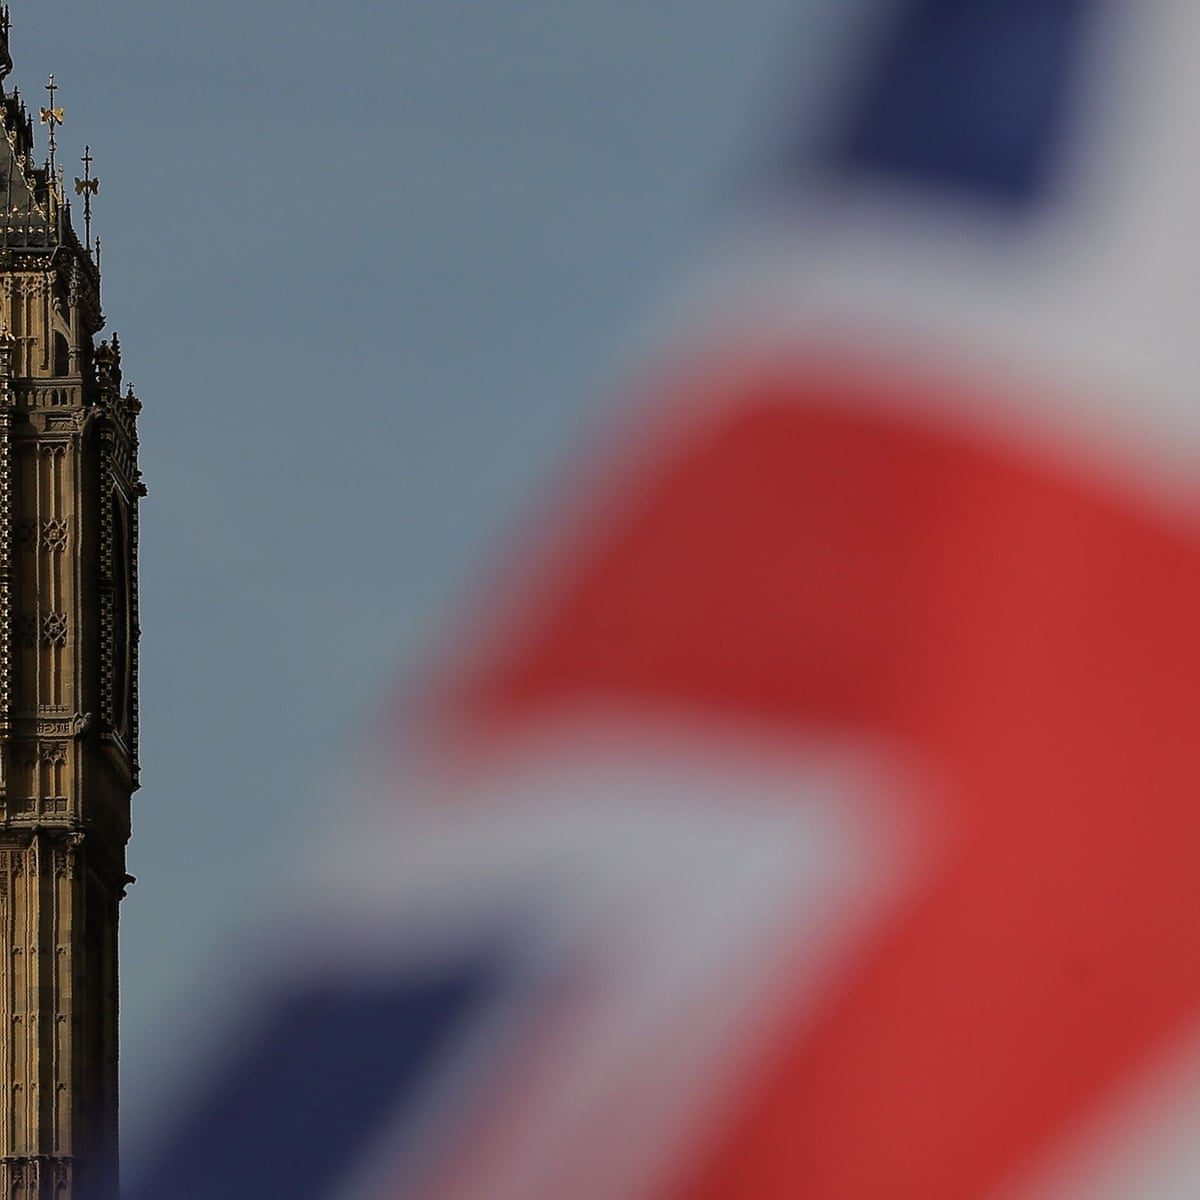 Uk Falls To Eighth Place In Good Country Index Below Ireland Uk News The Guardian